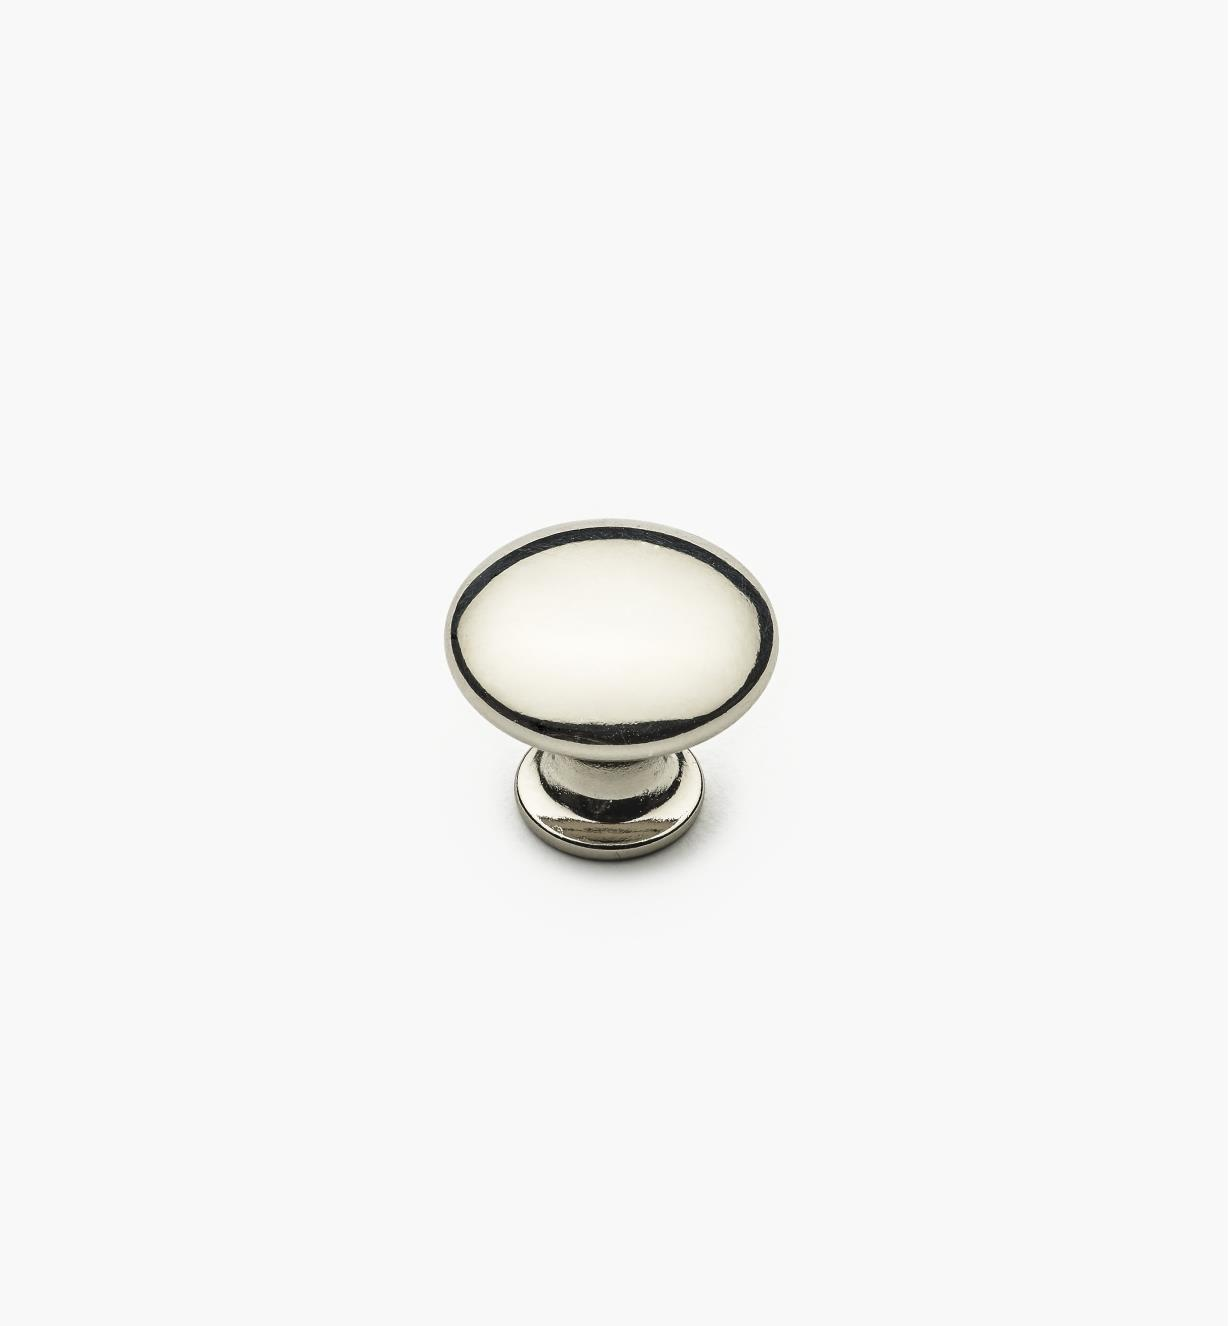 "02W4343 - 3/4"" x 5/8"" Polished Nickel Knob"